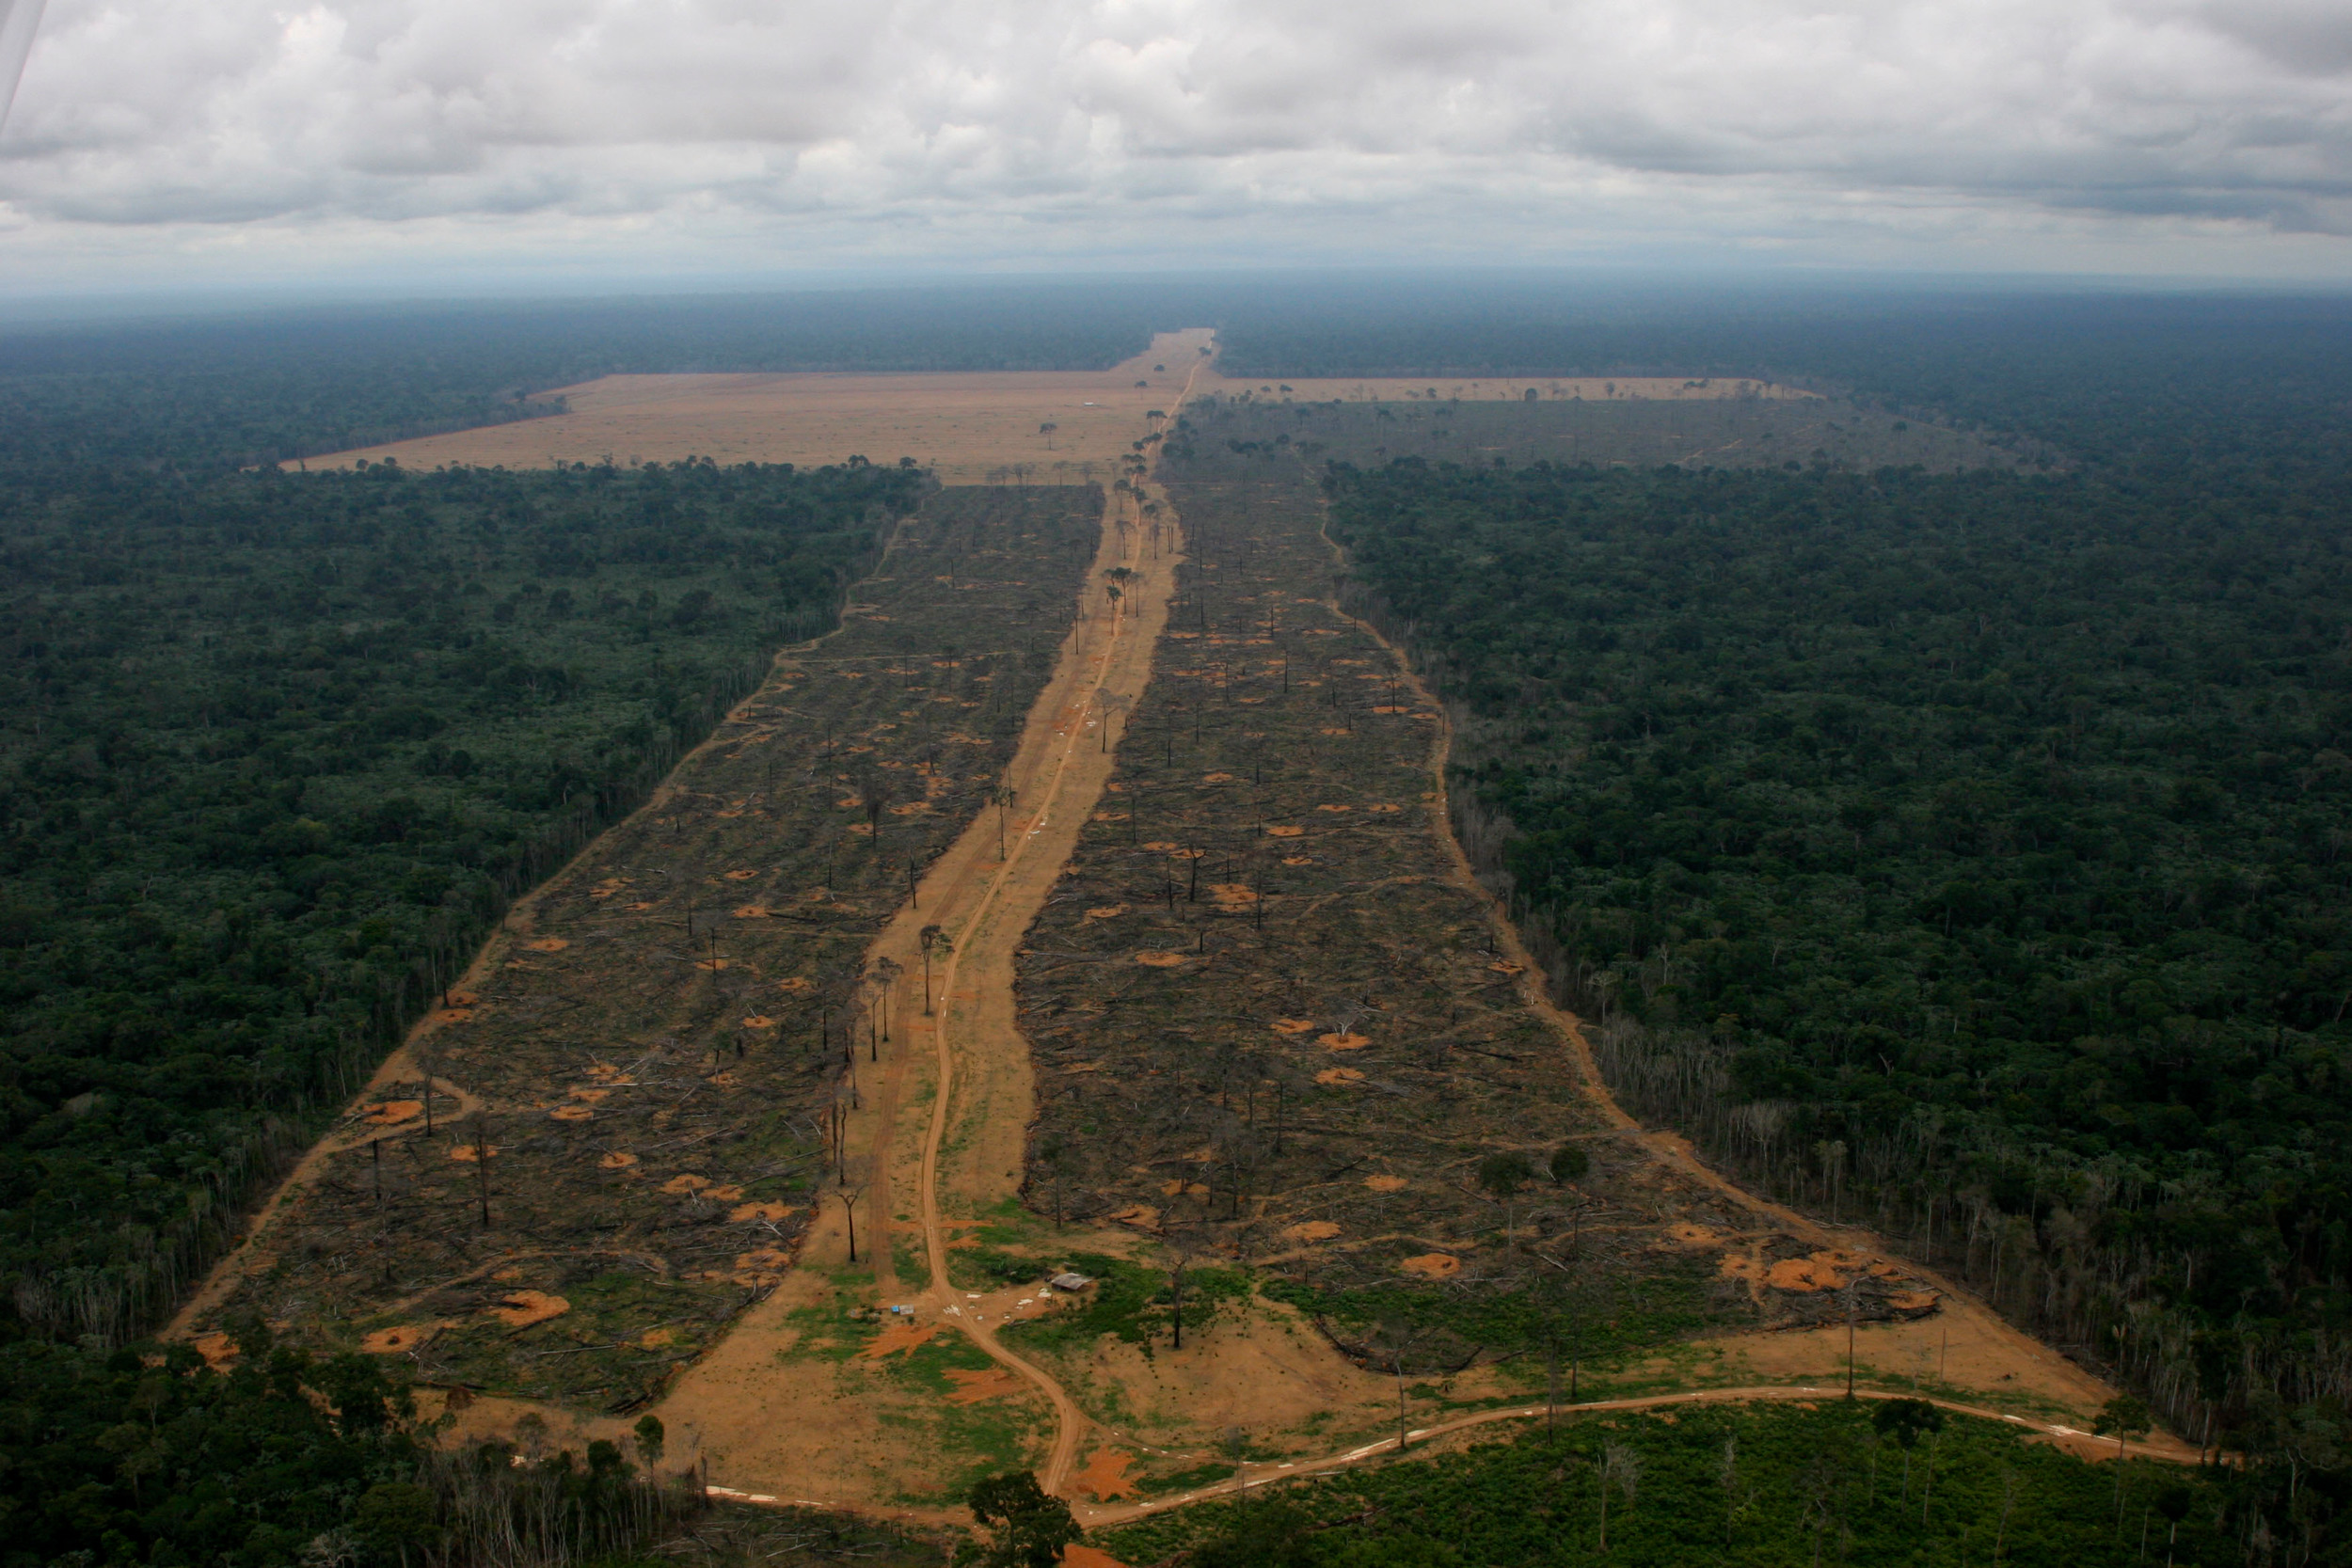 aerial shot of deforested area